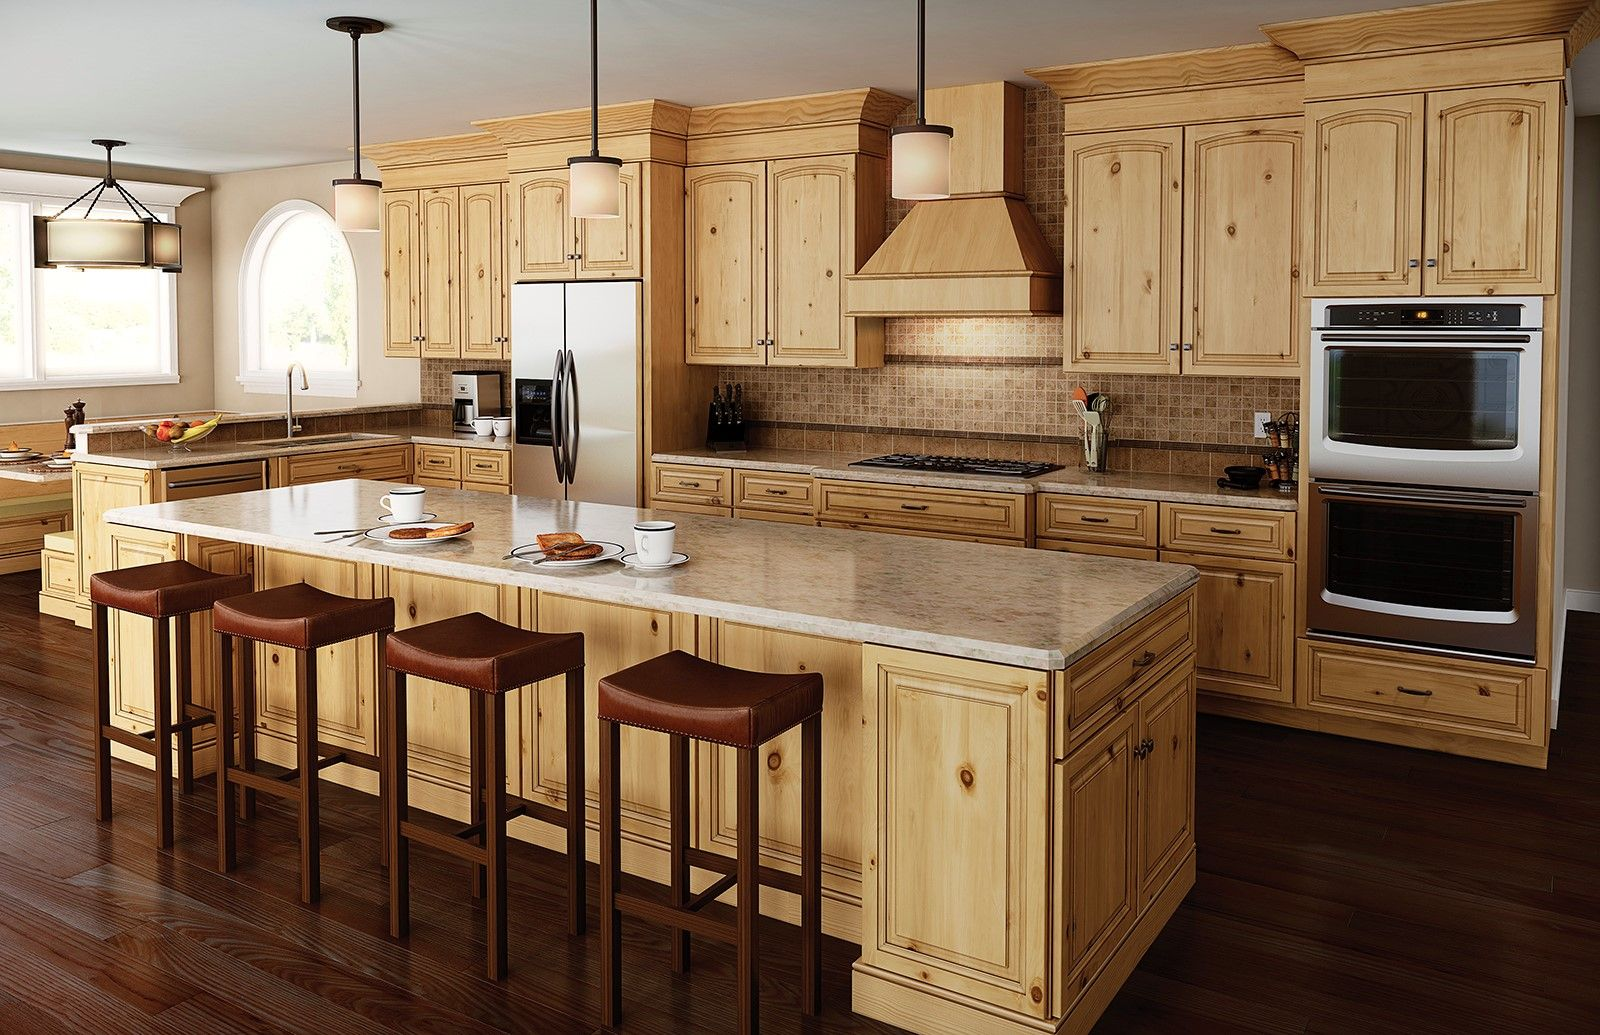 rustic birch kitchen cabinets images of kitchen cabinets in rustic birch 25729